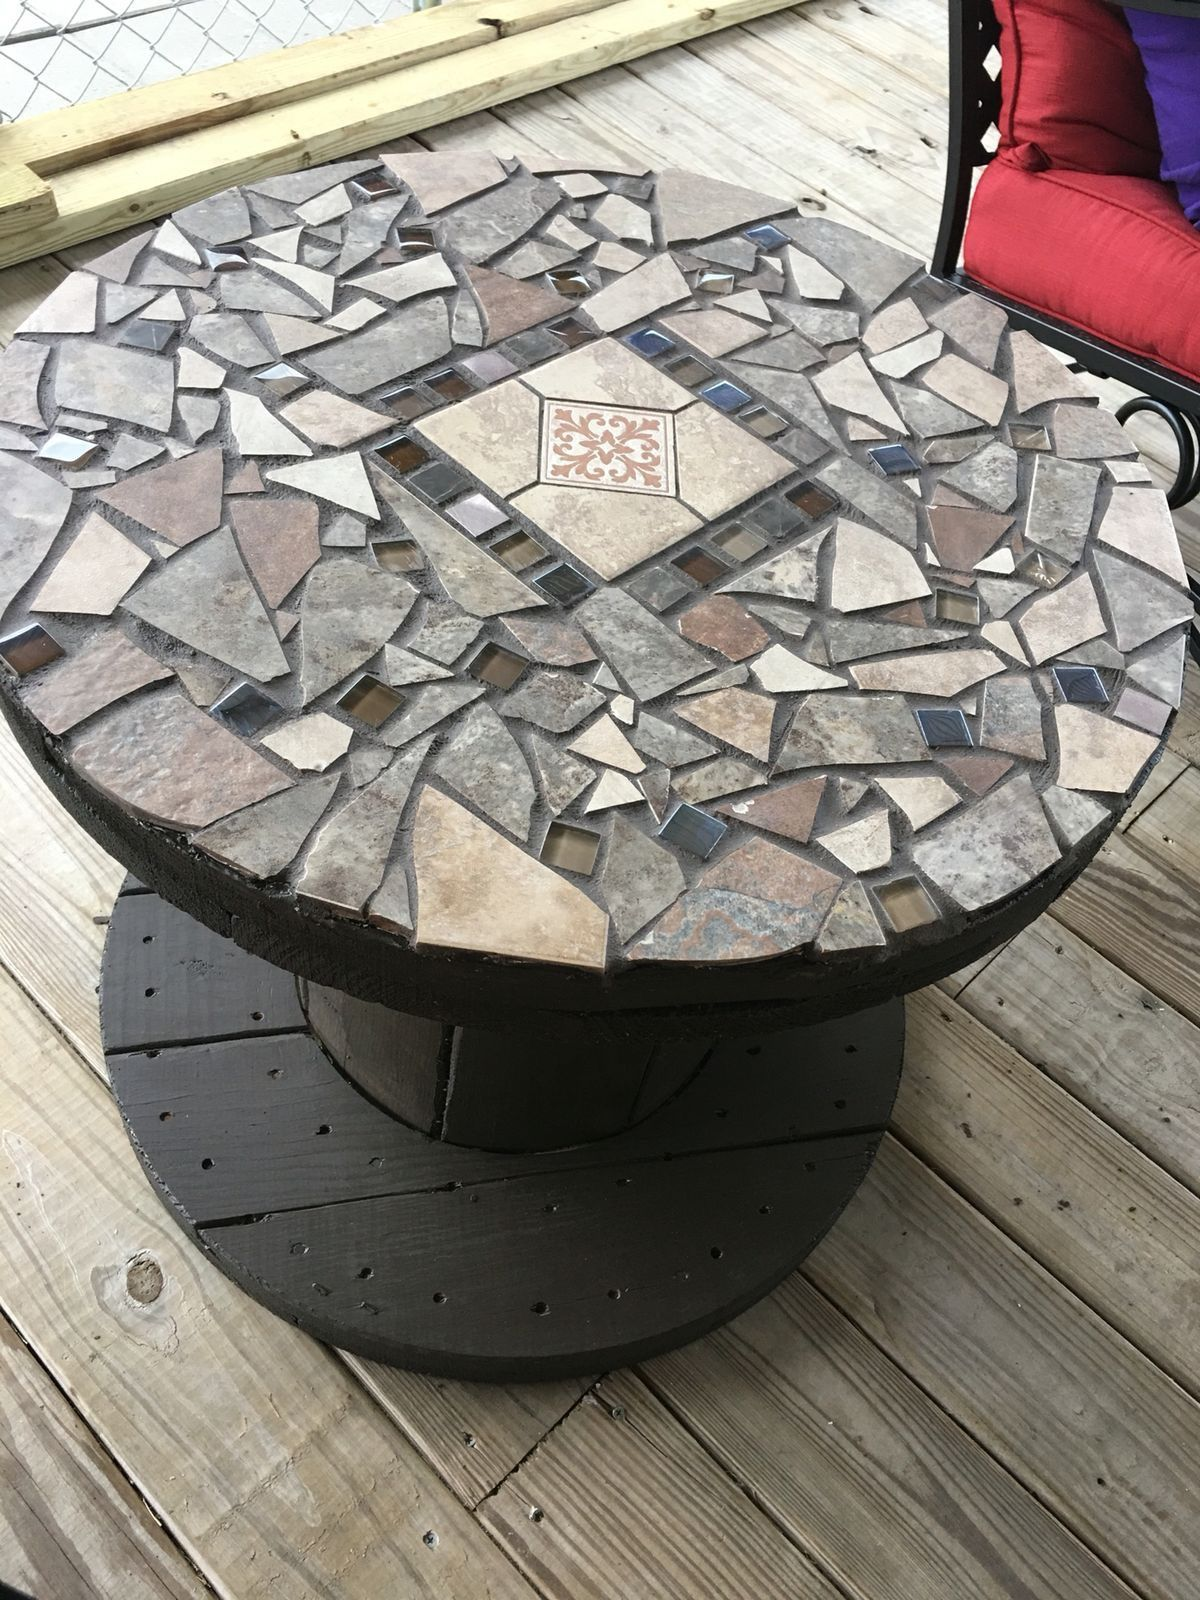 pin von marianne davis auf stone mosaics pinterest kabeltrommel mosaik und gartenmoebel. Black Bedroom Furniture Sets. Home Design Ideas